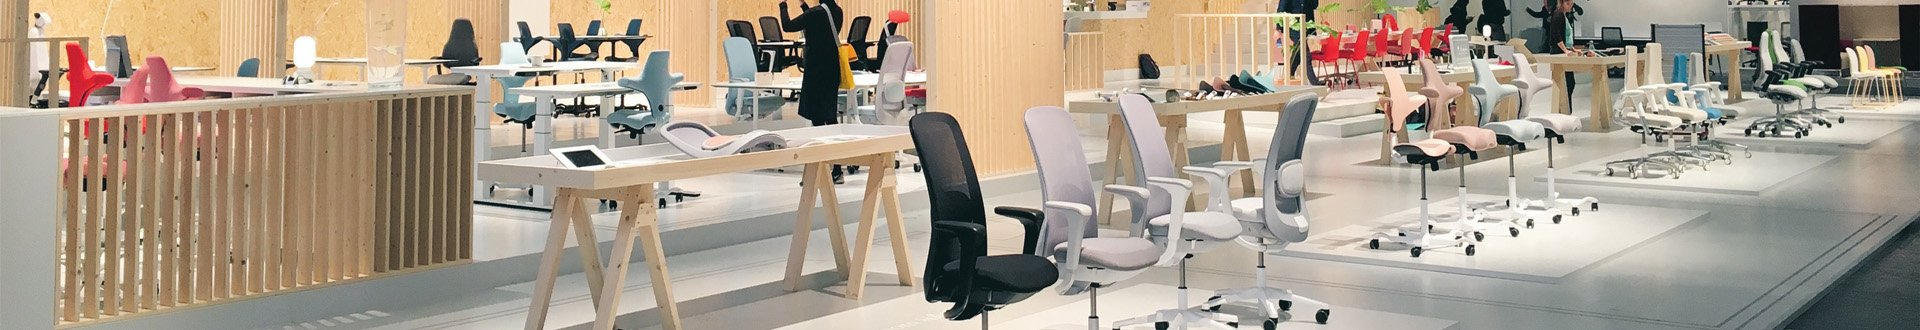 Buy Ergonomic Office Chairs